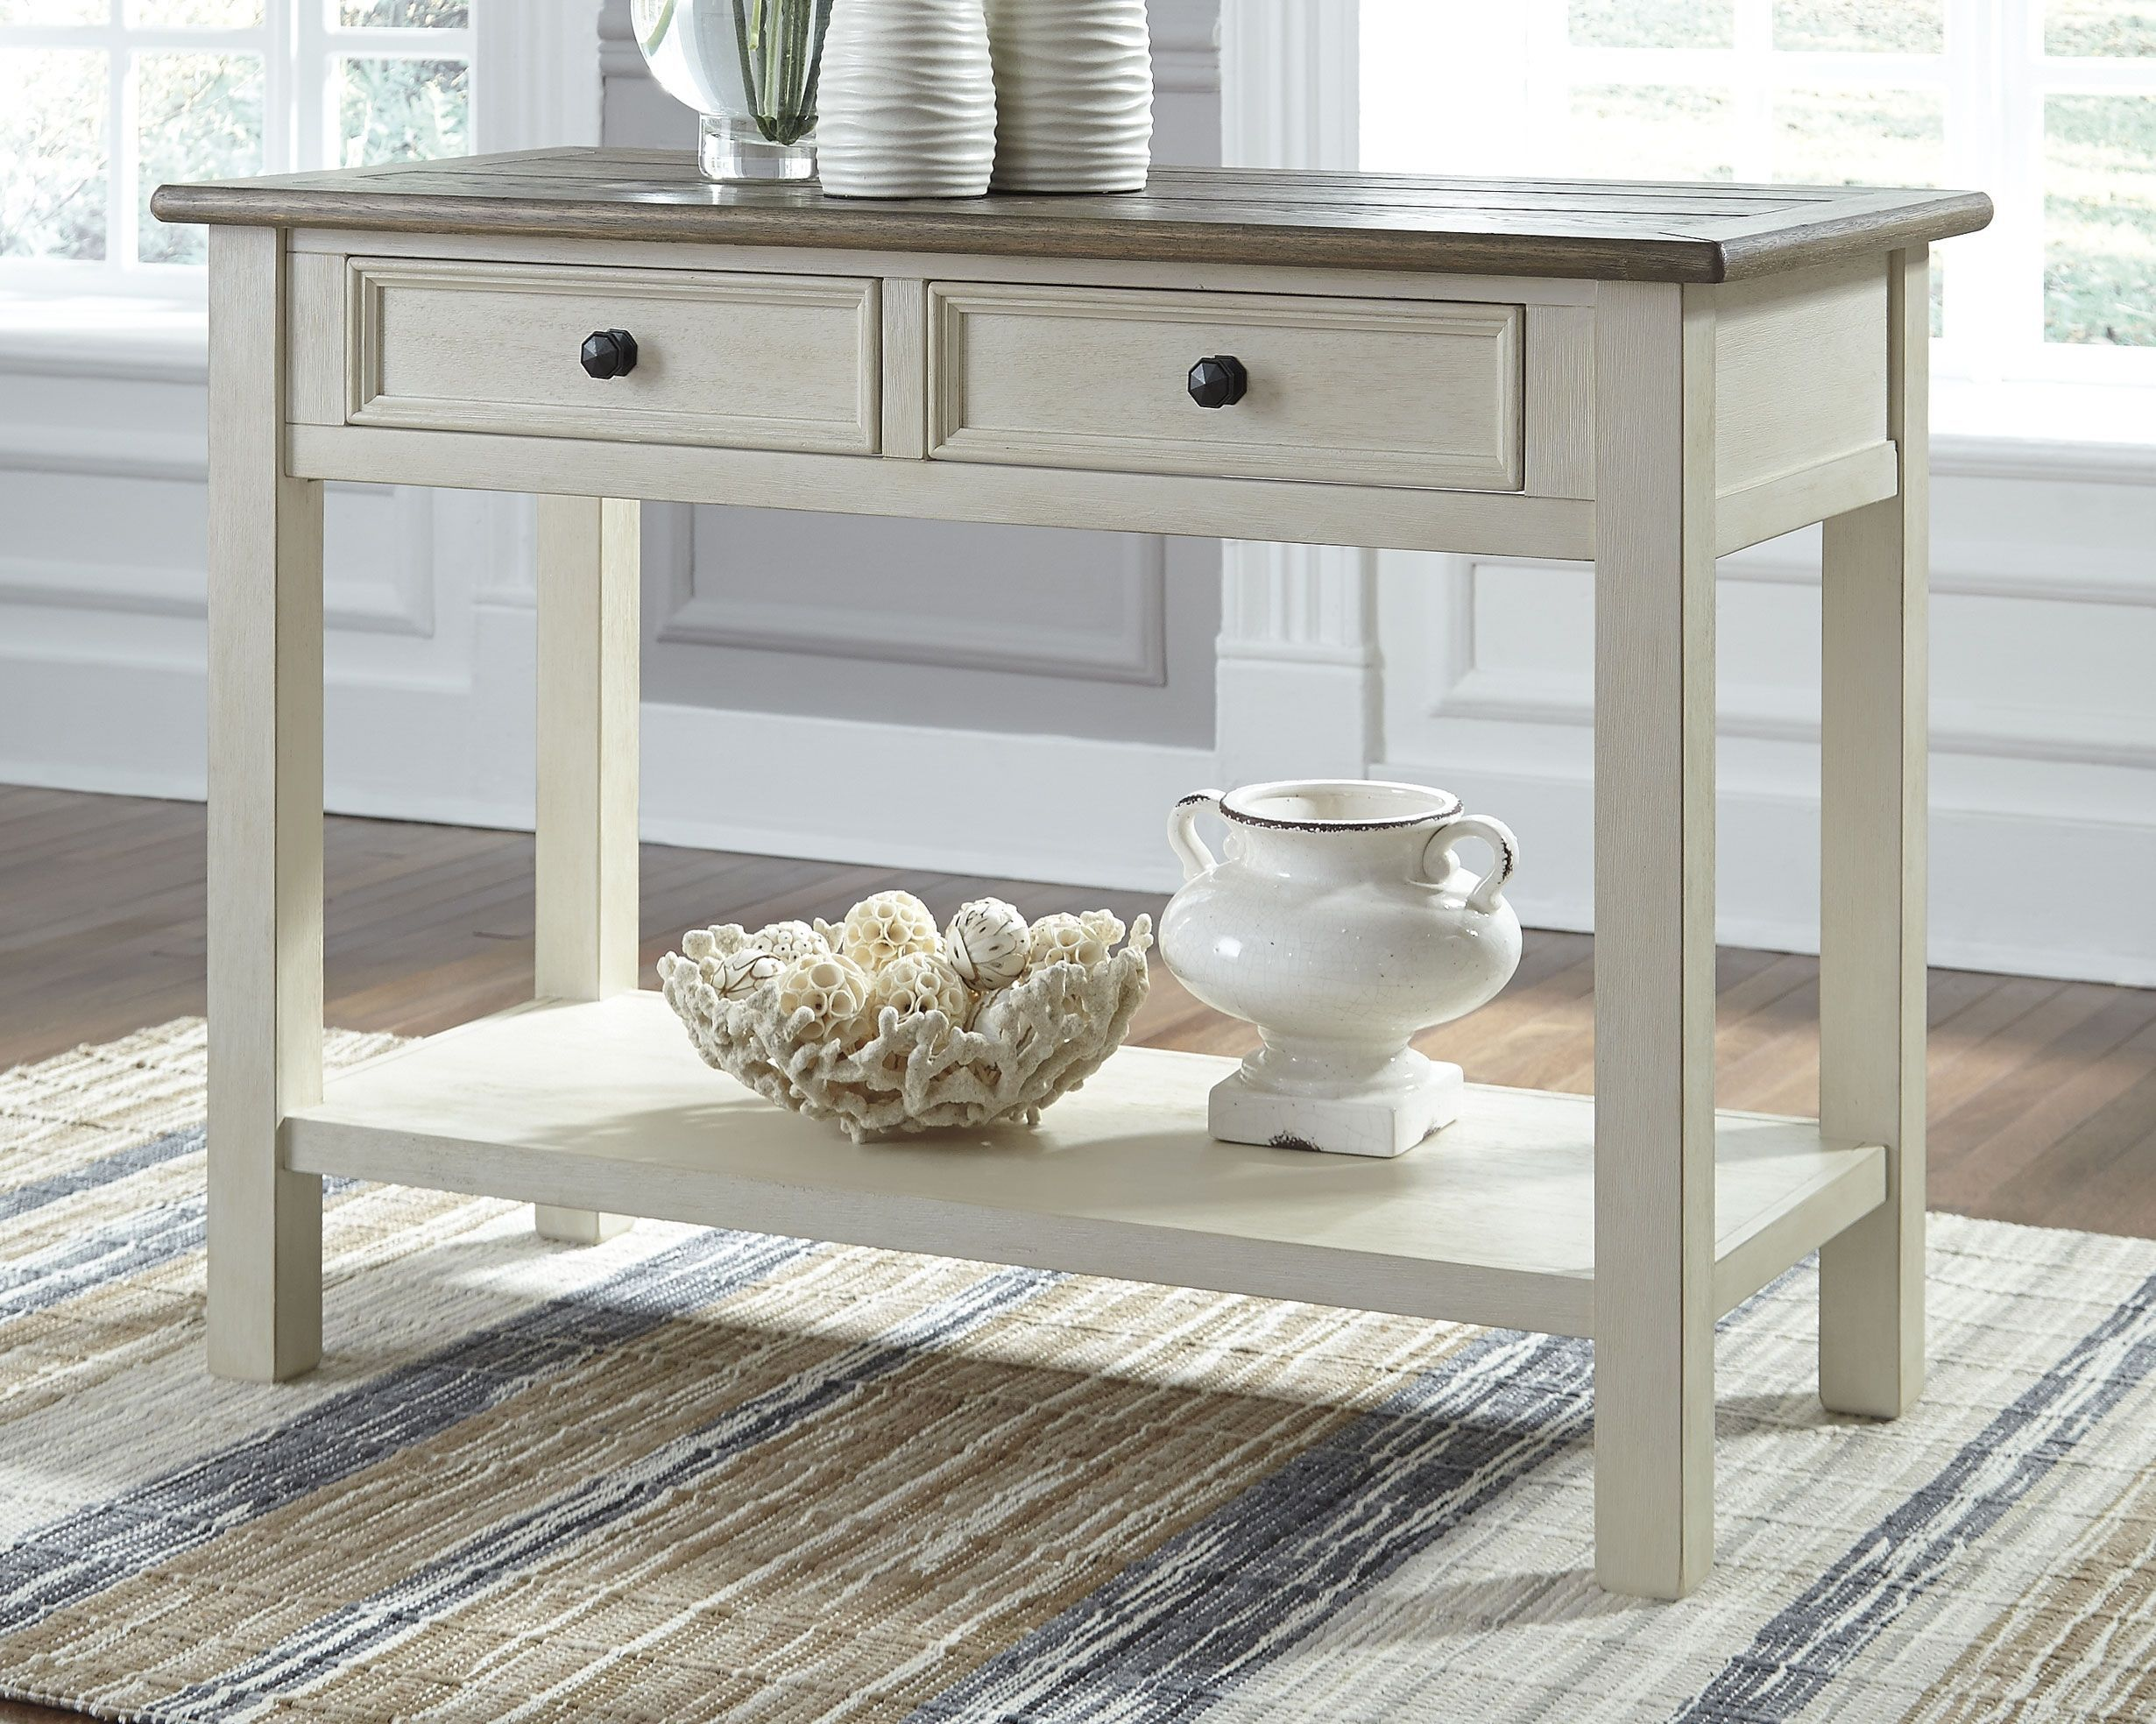 Bolanburg Sofa Console Table Two Tone In 2020 Sofa Table Ashley Furniture Furniture